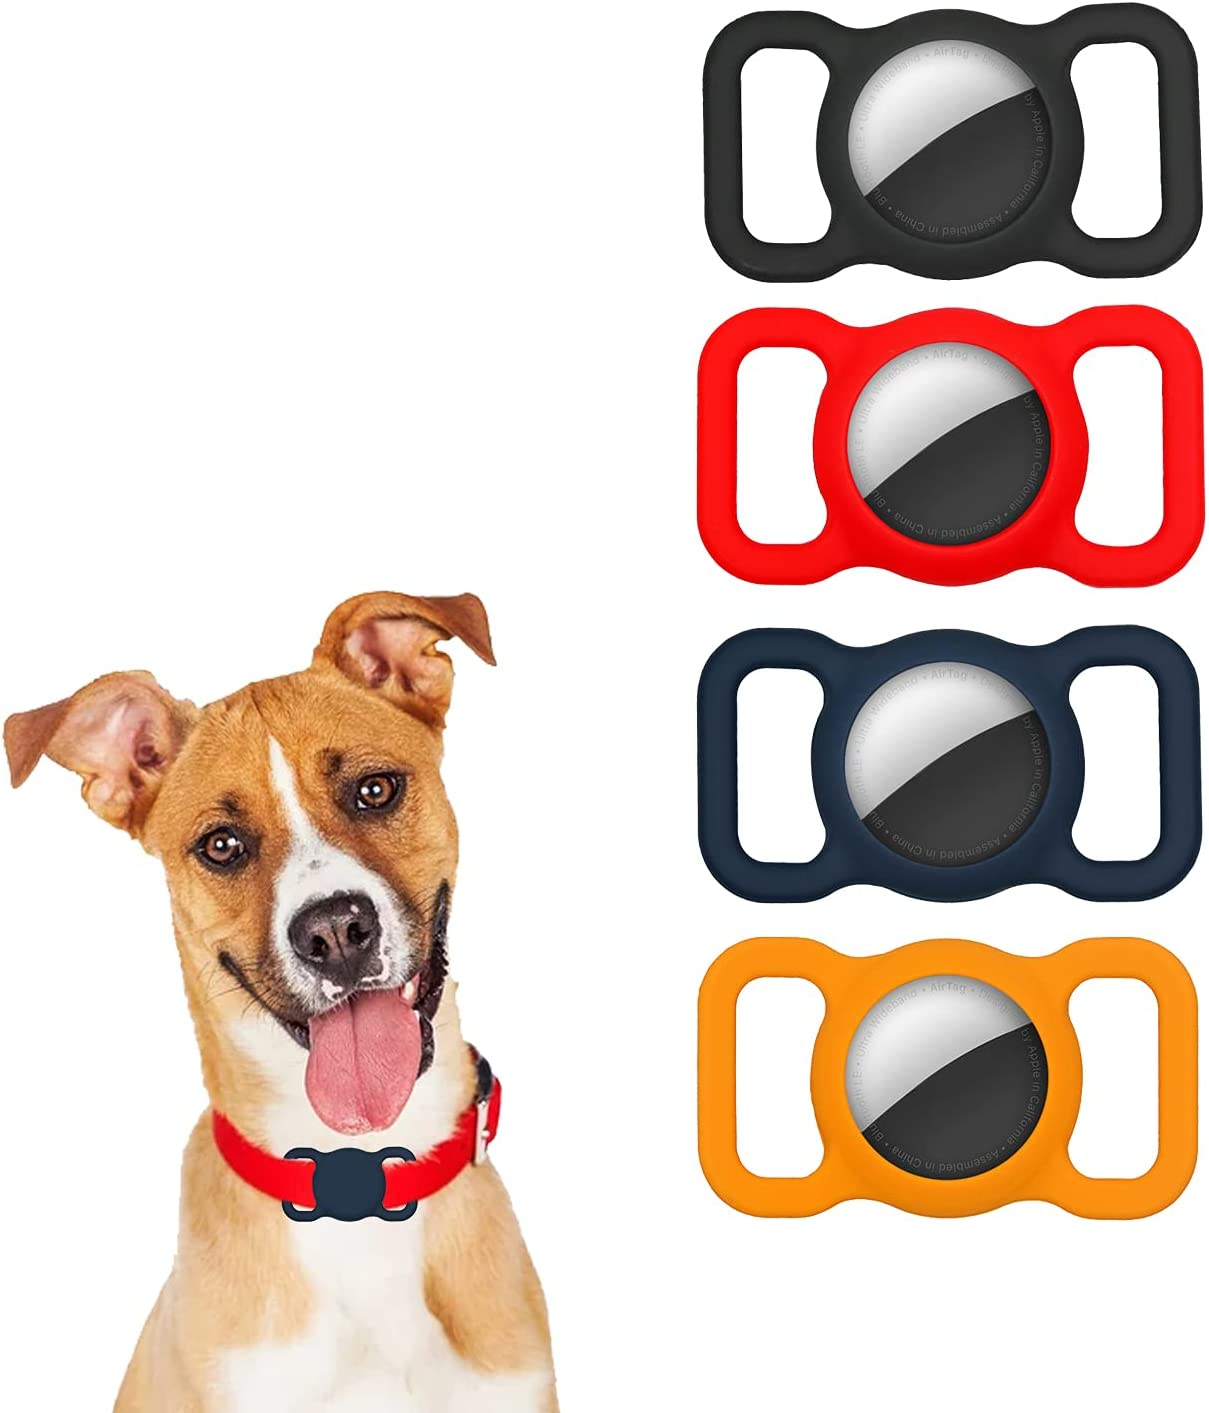 Airtag Dog Collar Factory outlet Holder,Silicone Compatible Max 67% OFF Holder with Ap